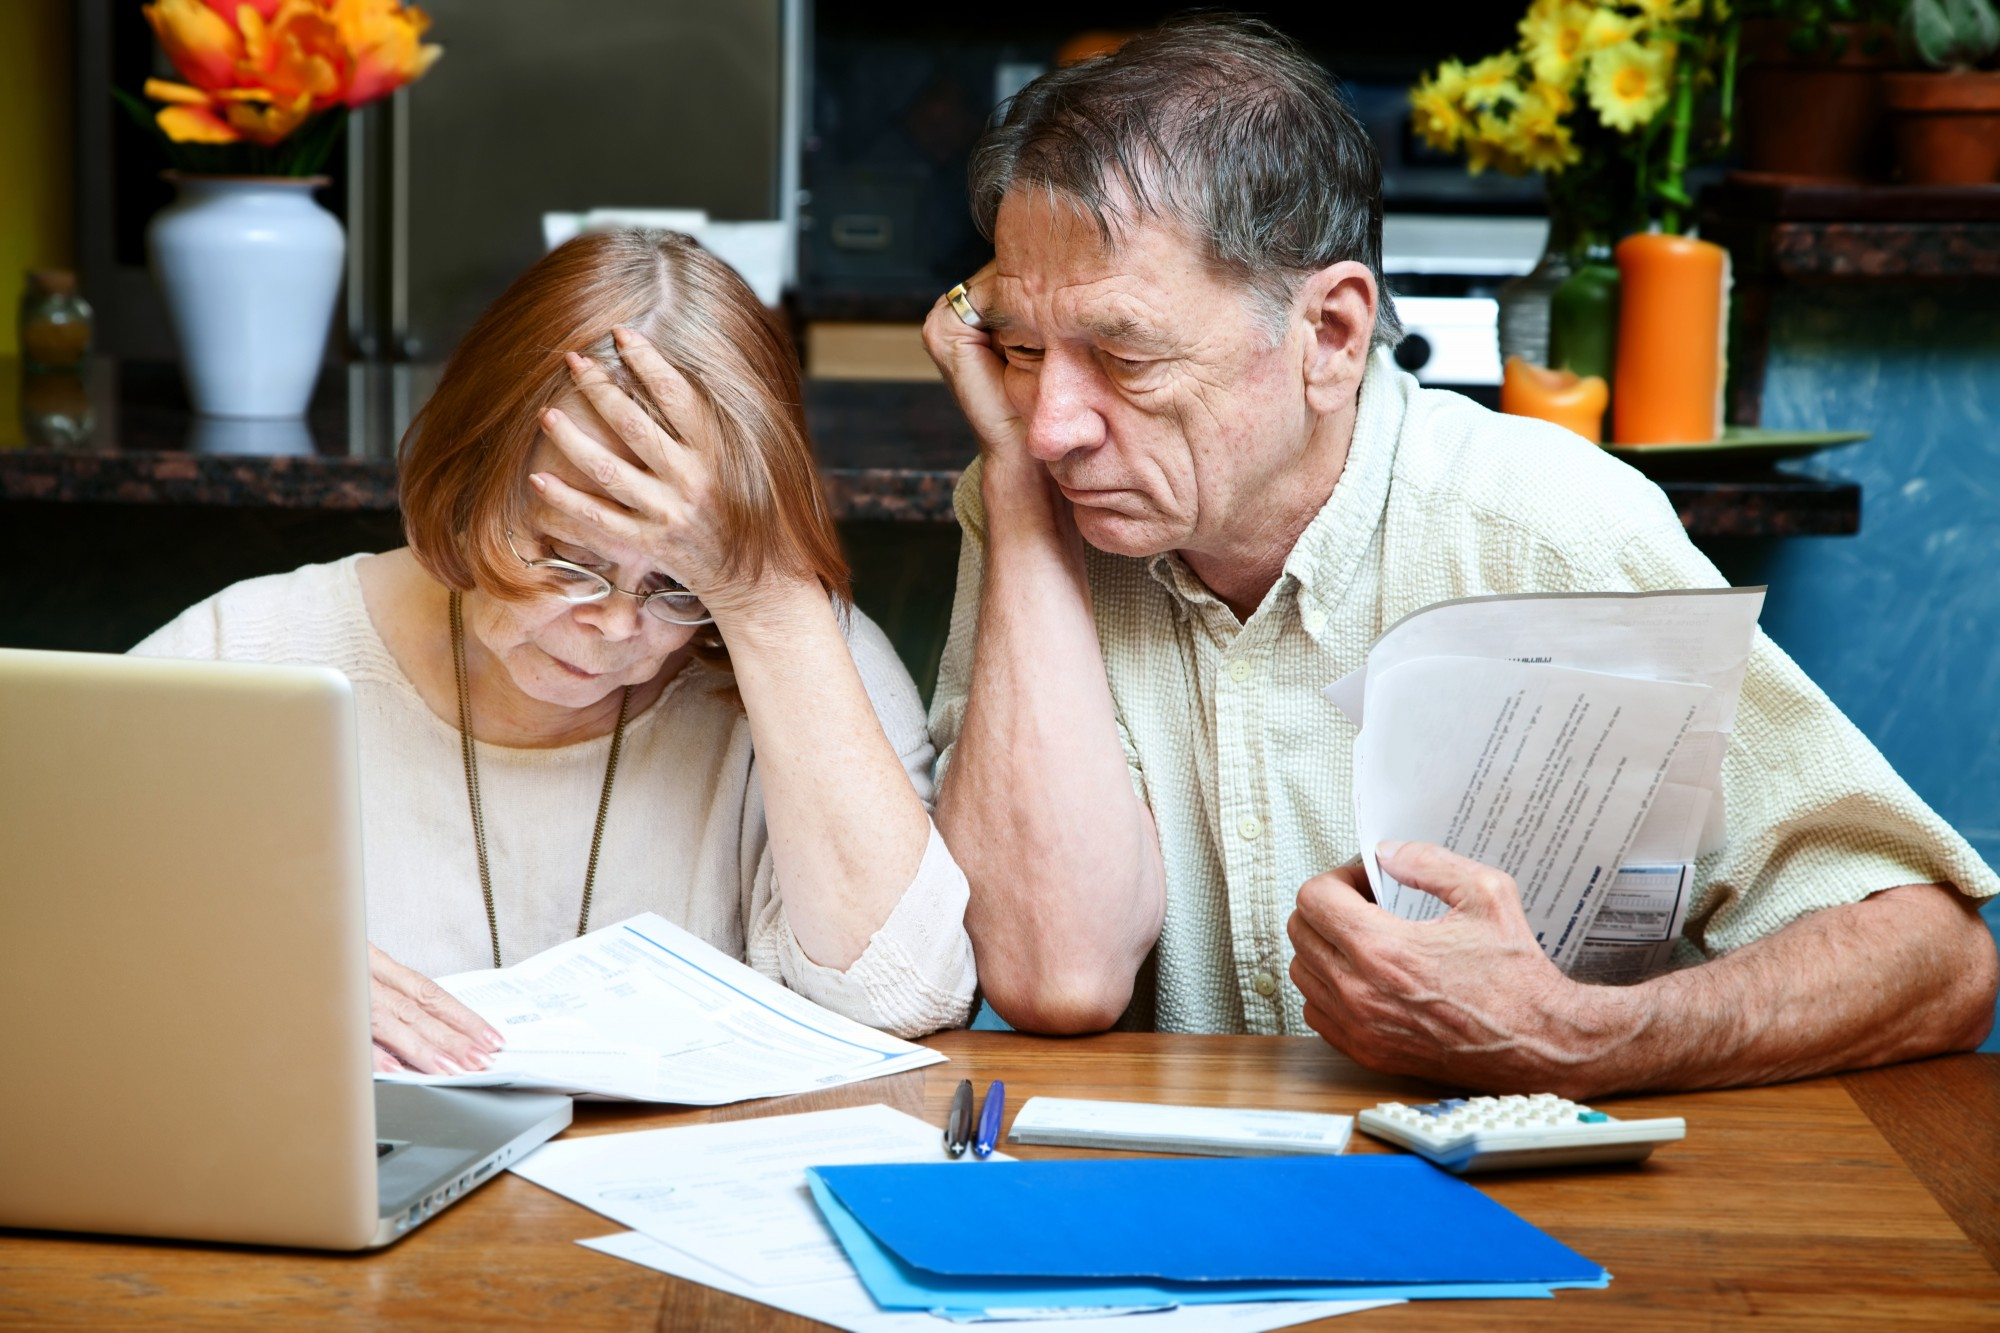 Your Social Security disability claim has been denied. What next?